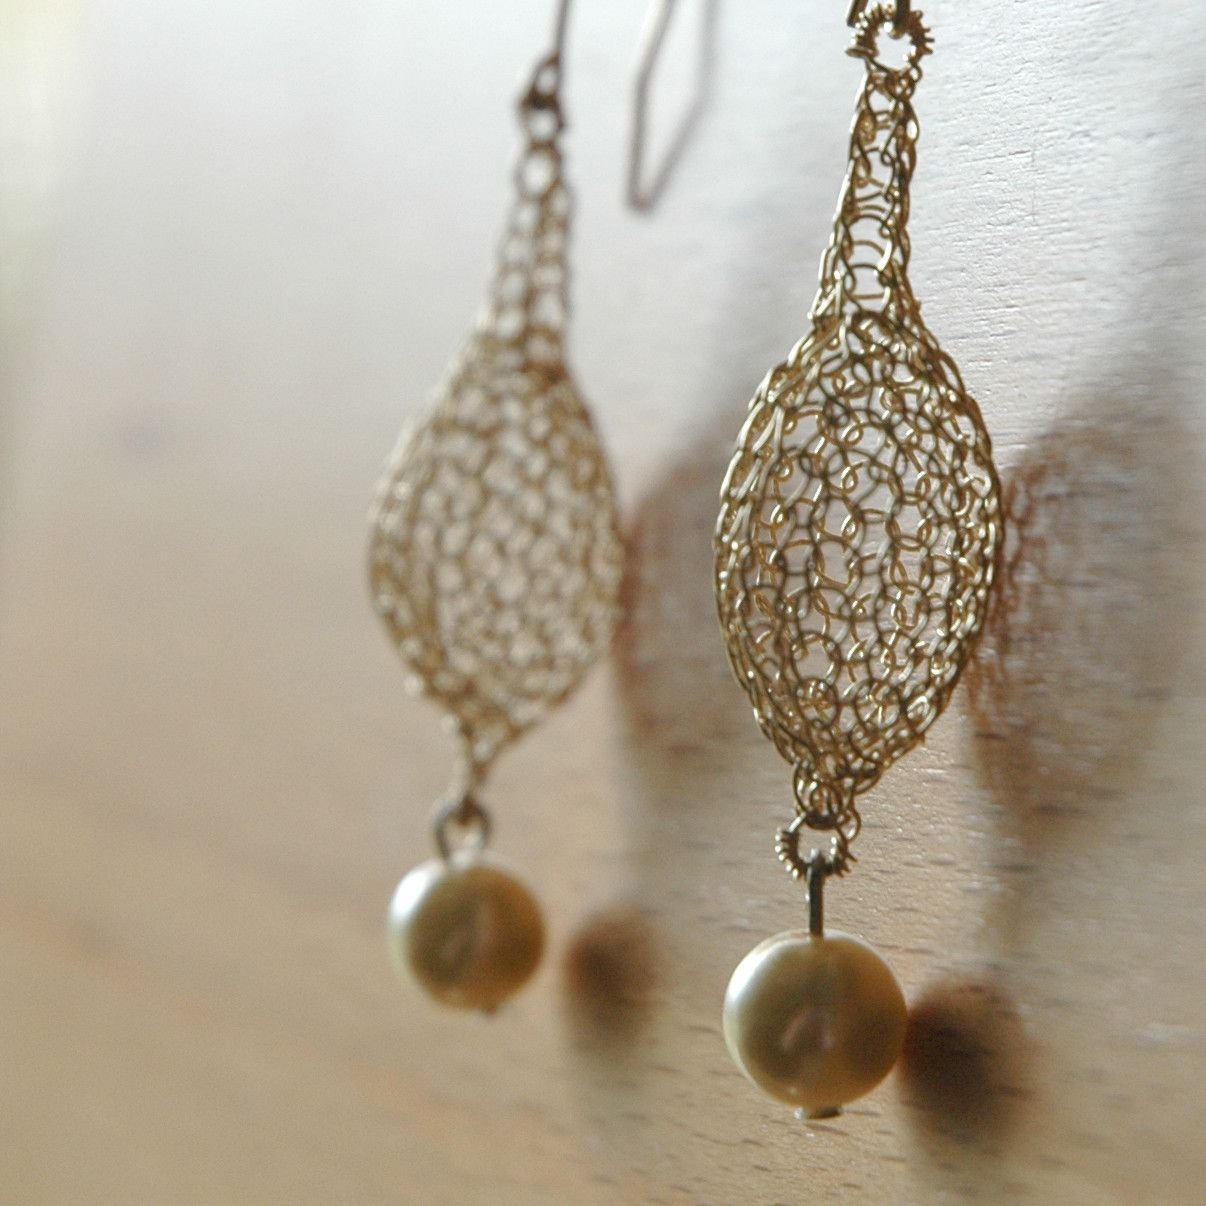 Drop shape Crochet Earring with a hanging pearl | Crochet earrings ...